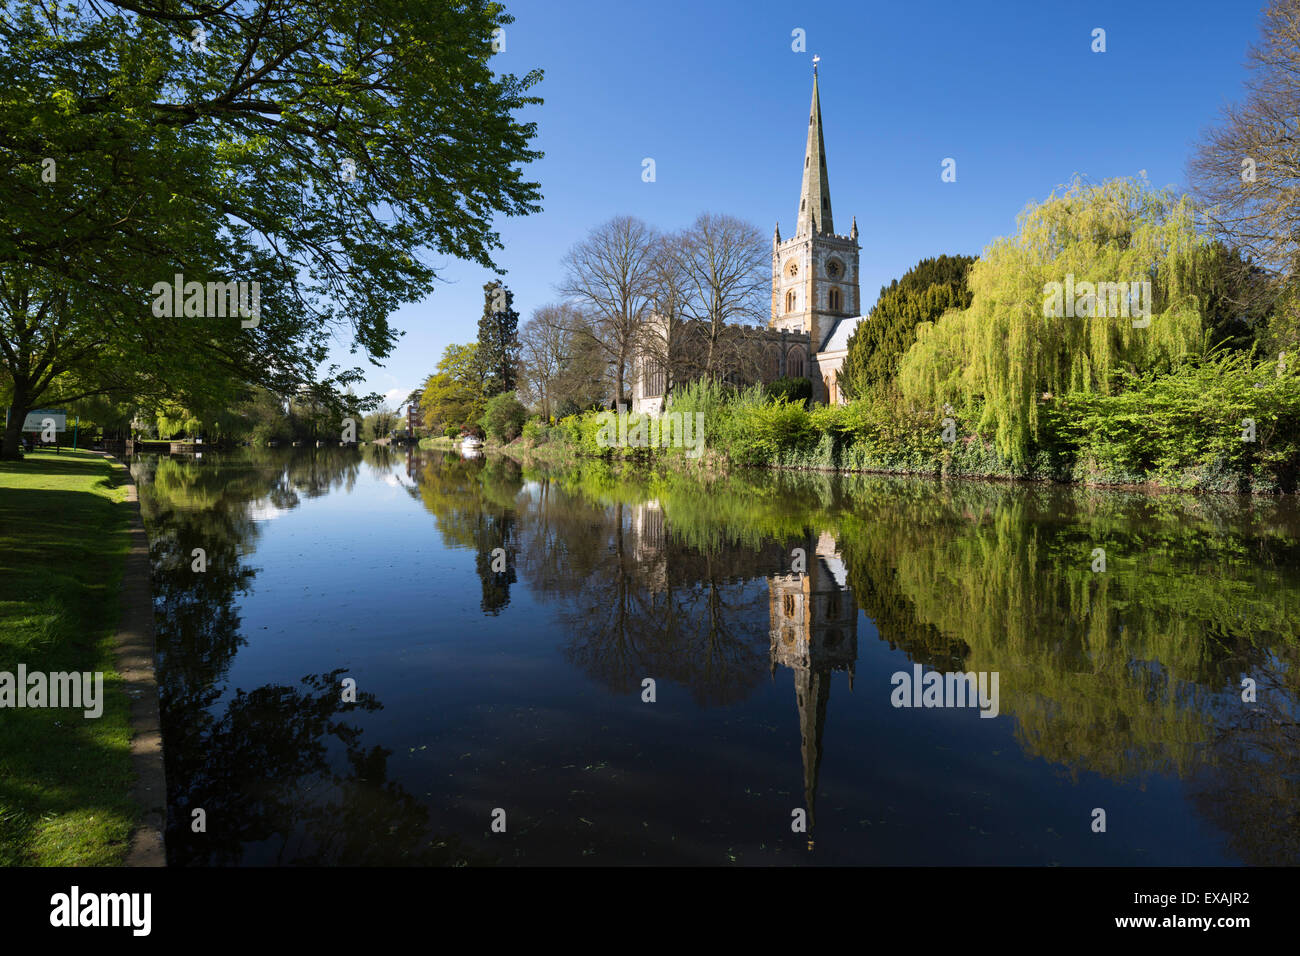 Holy Trinity Church on the River Avon, Stratford-upon-Avon, Warwickshire, England, United Kingdom, Europe Stock Photo